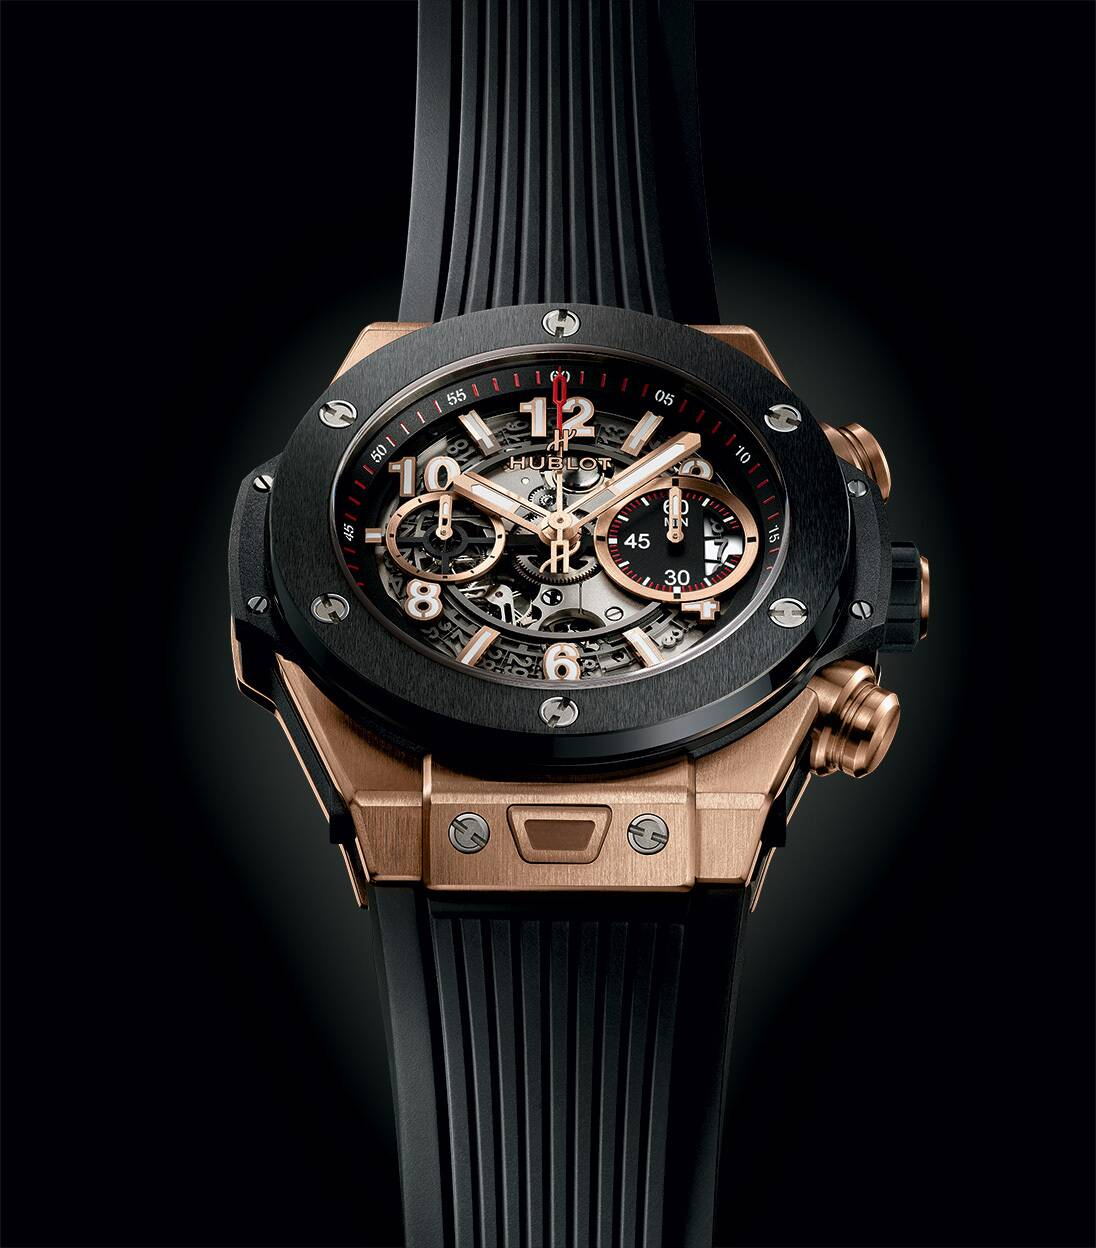 Hublot watchmaking expertise watches jewelry lvmh for Hublot watches